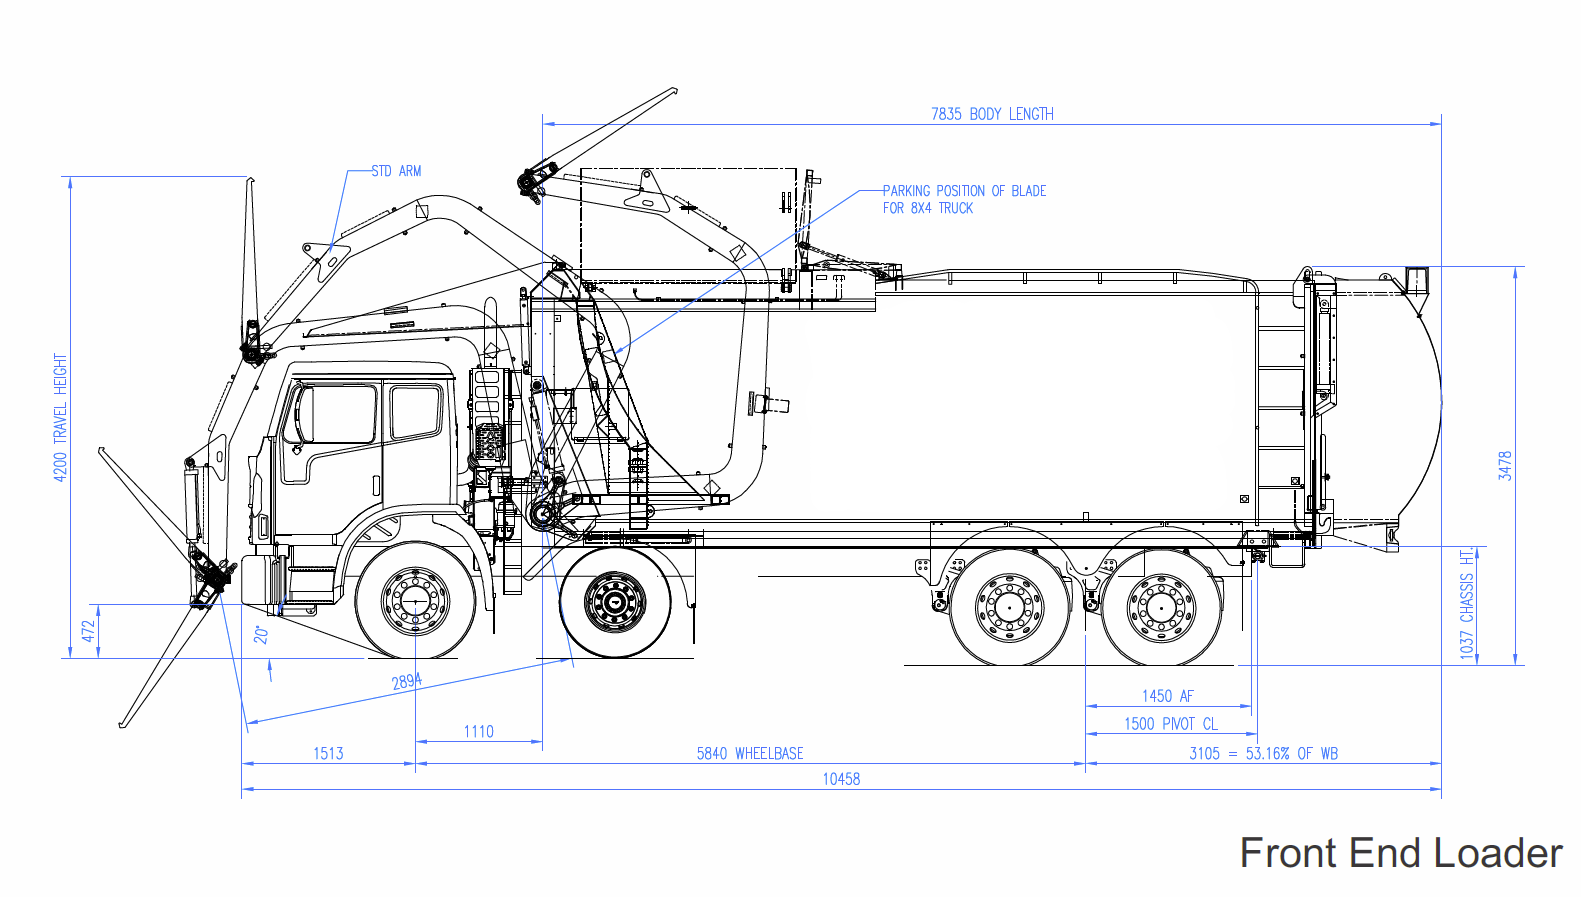 line drawing of front end loader garbage truck ideas for gavin and Garbage Truck Mexico line drawing of front end loader garbage truck